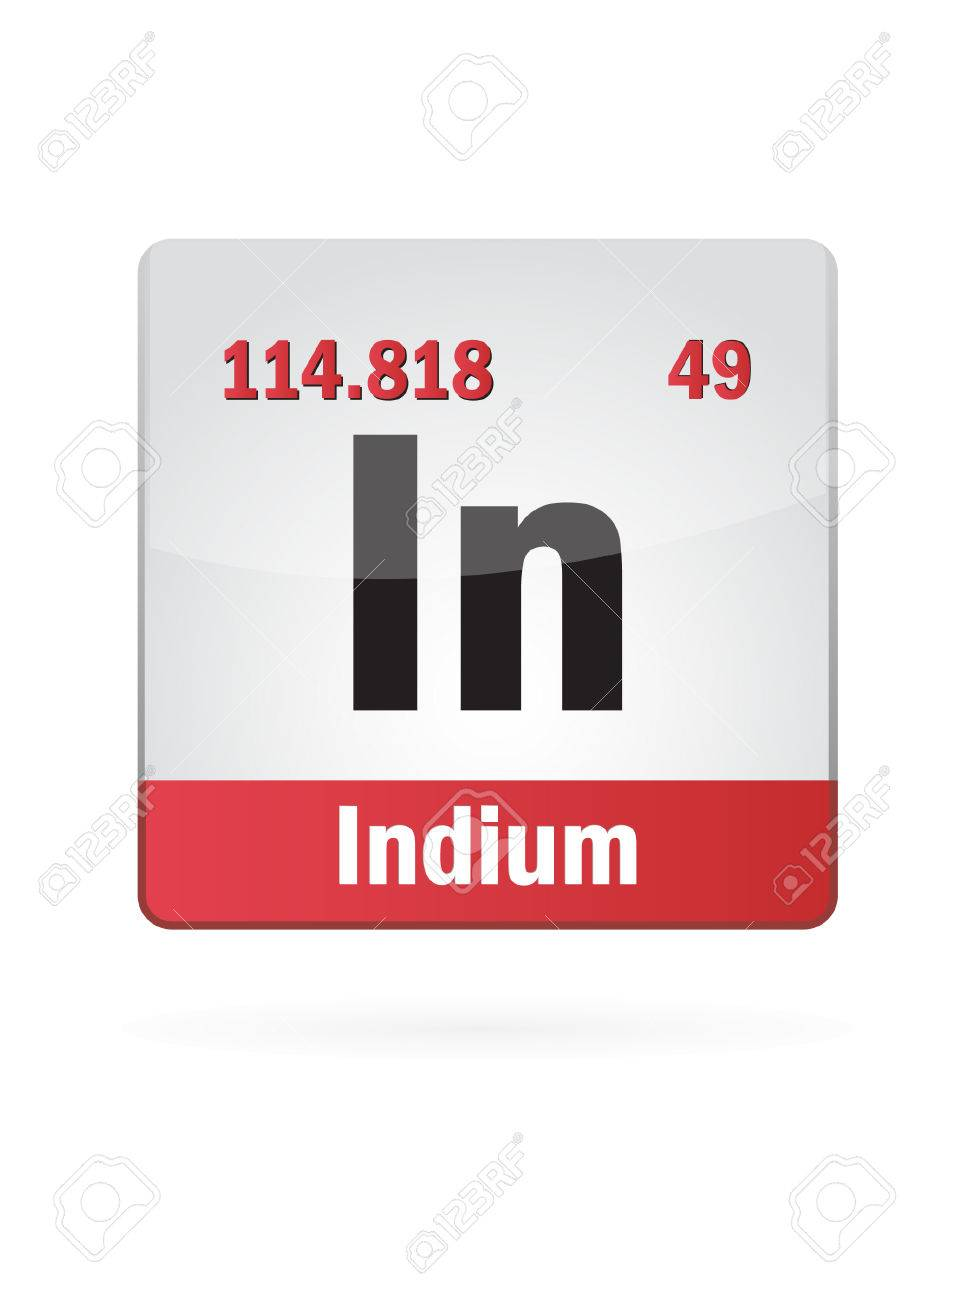 Indium symbol illustration icon royalty free cliparts vectors indium symbol illustration icon stock vector 23652250 biocorpaavc Images